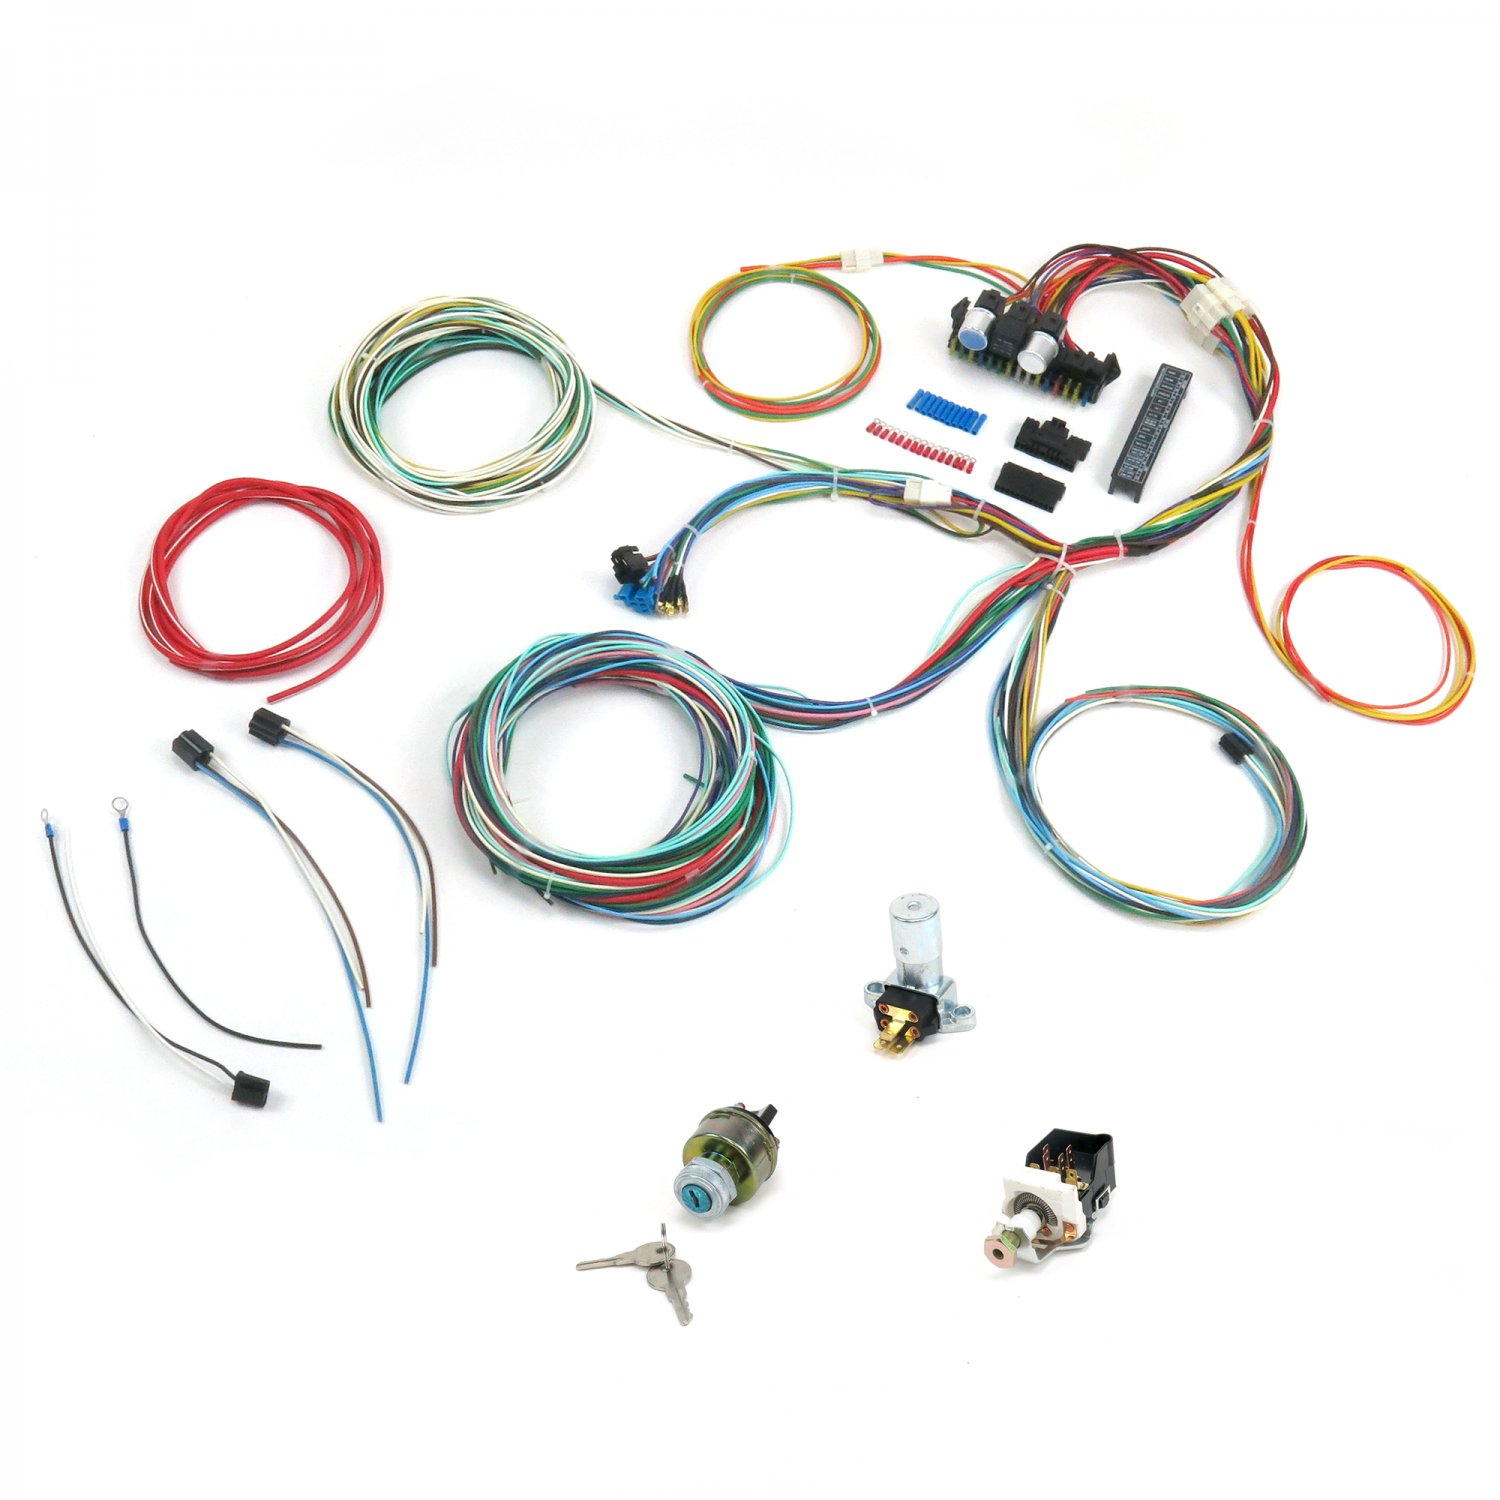 hight resolution of universal 1964 1965 1966 ford mustang fairlane wiring harness wire kit